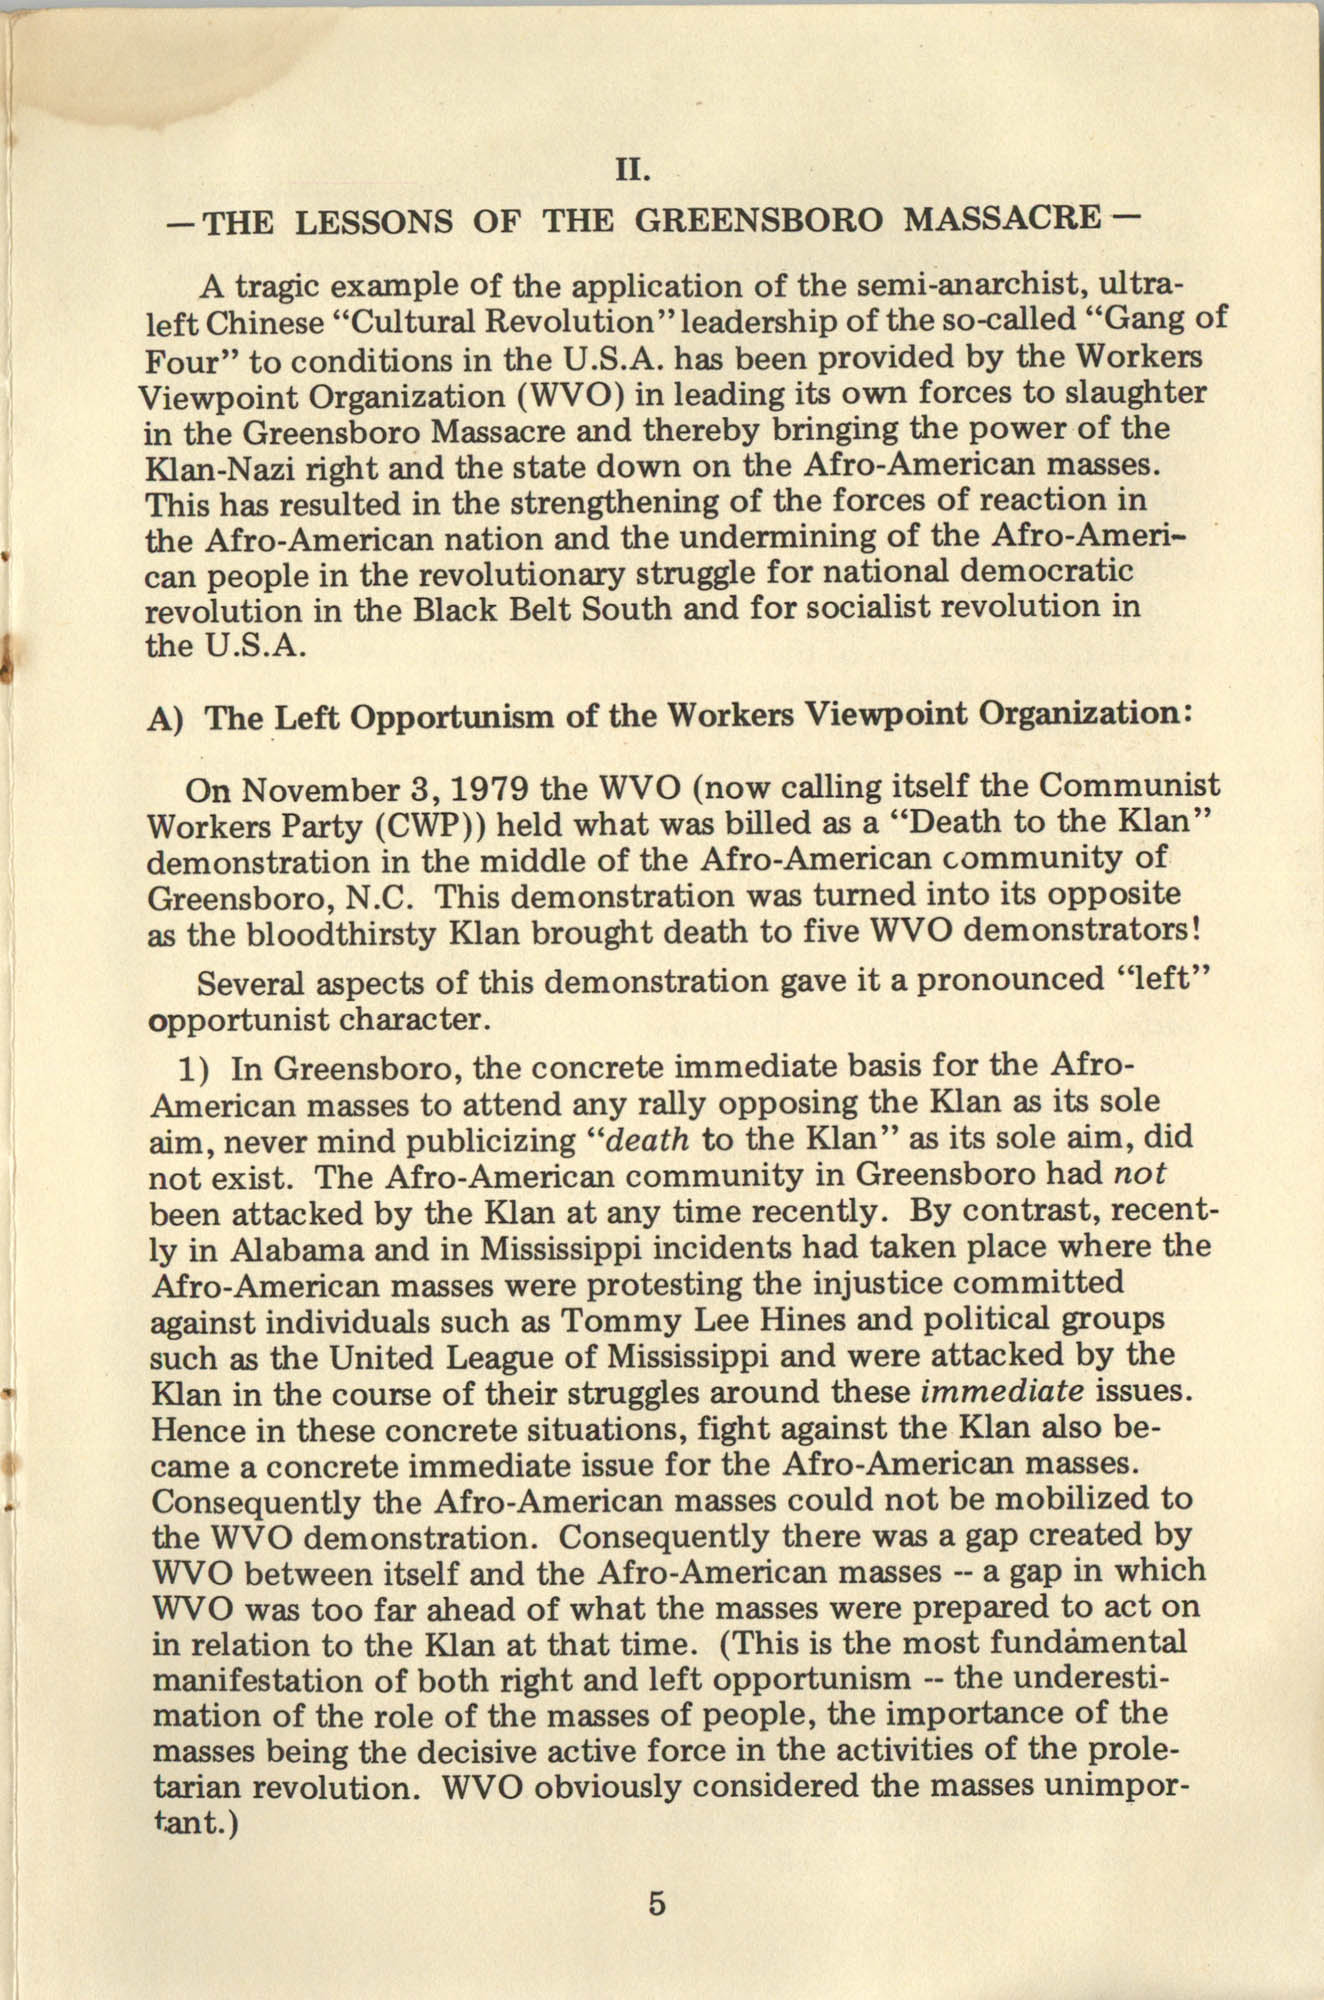 Ray O. Light Newsletter, Volume 1, Number 4, Page 5